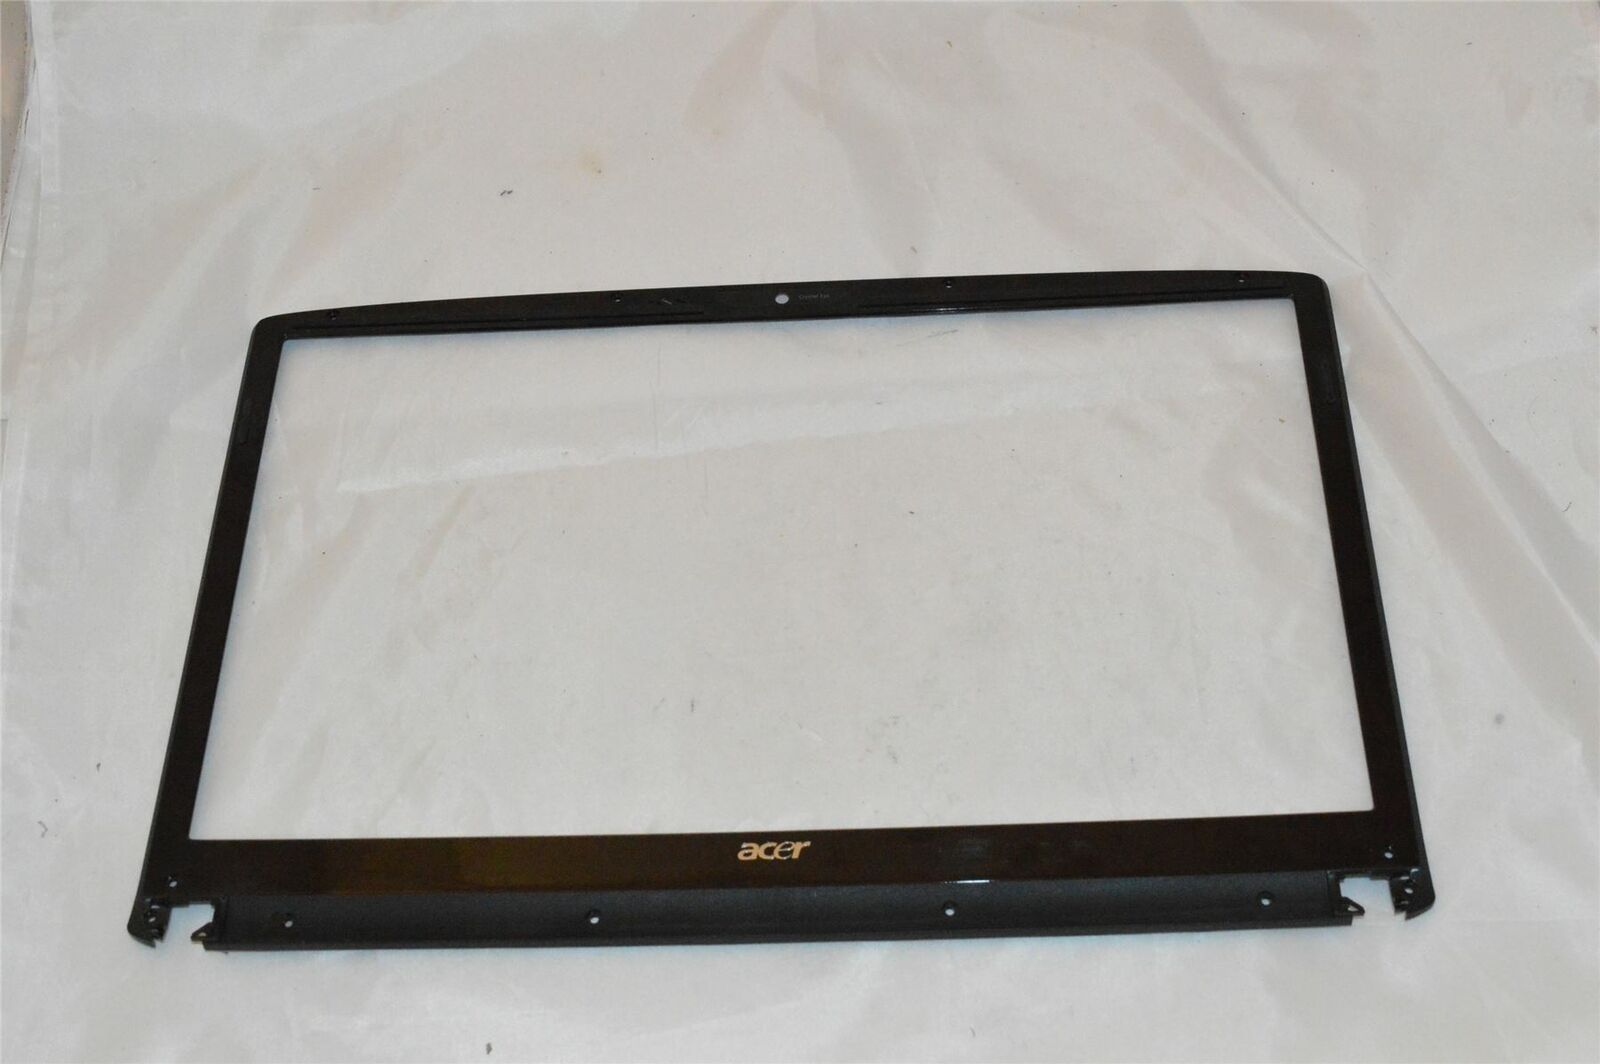 Acer Aspire 8920g Screen Bezel 6051bb0286101-2, Used, Good Condition